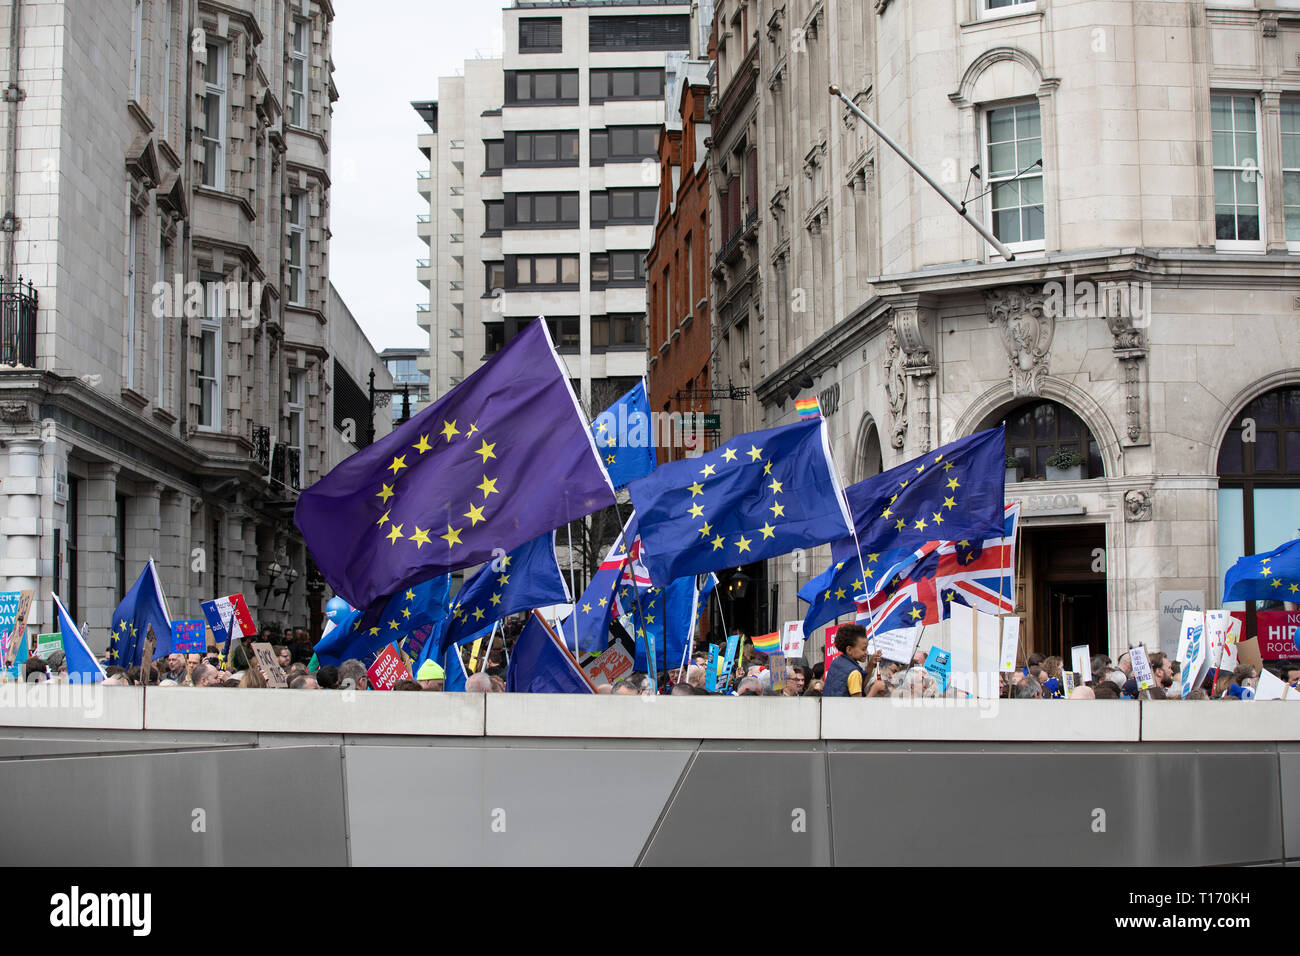 European Union flags above marchers, People's Vote March, London, England - Stock Image